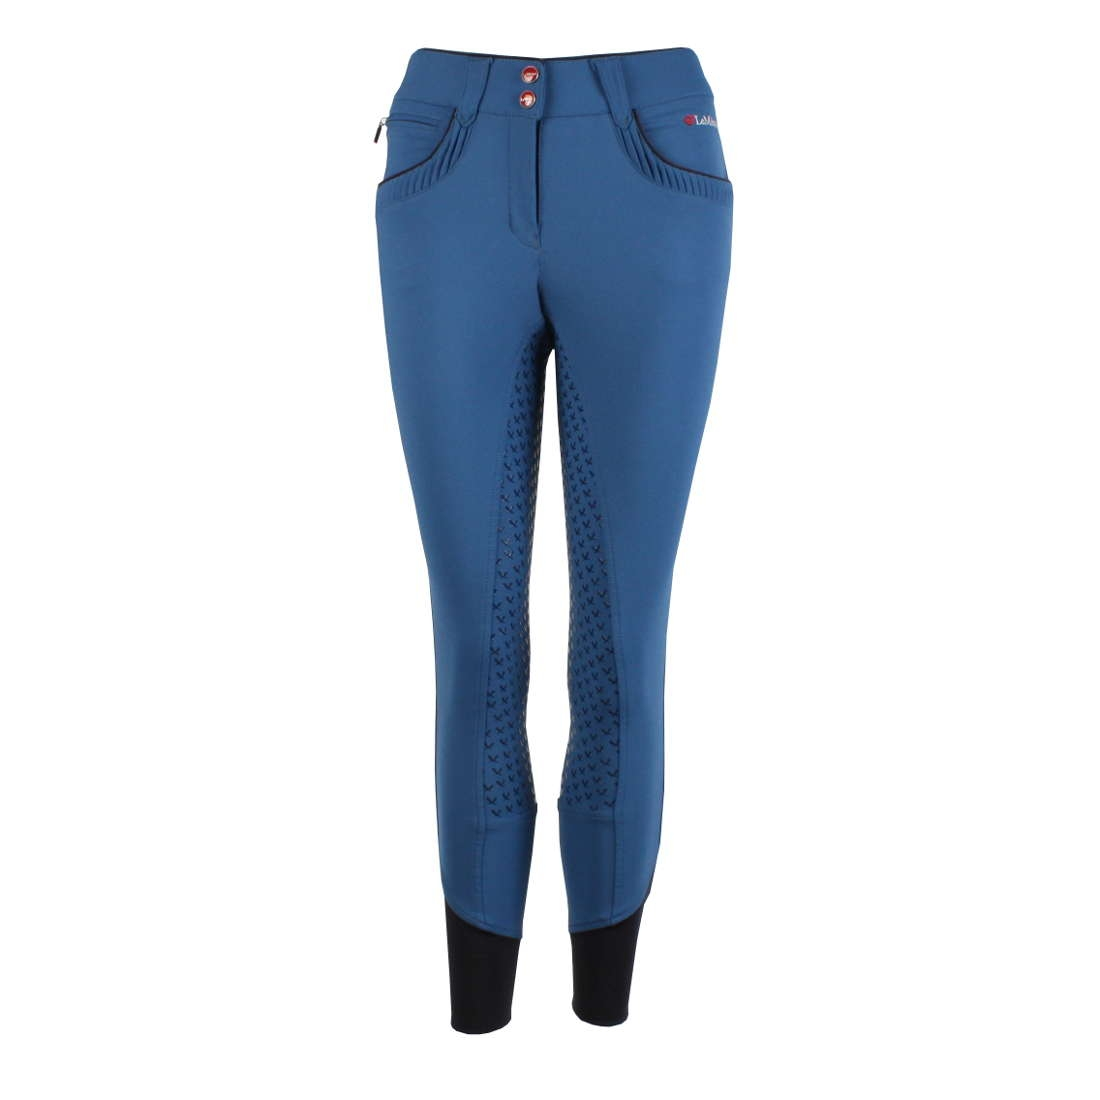 Lemieux Support Boots At Naylors Jake Fleece Combie Blue Grey My Ladies Engage Breeches Midnight Indigo